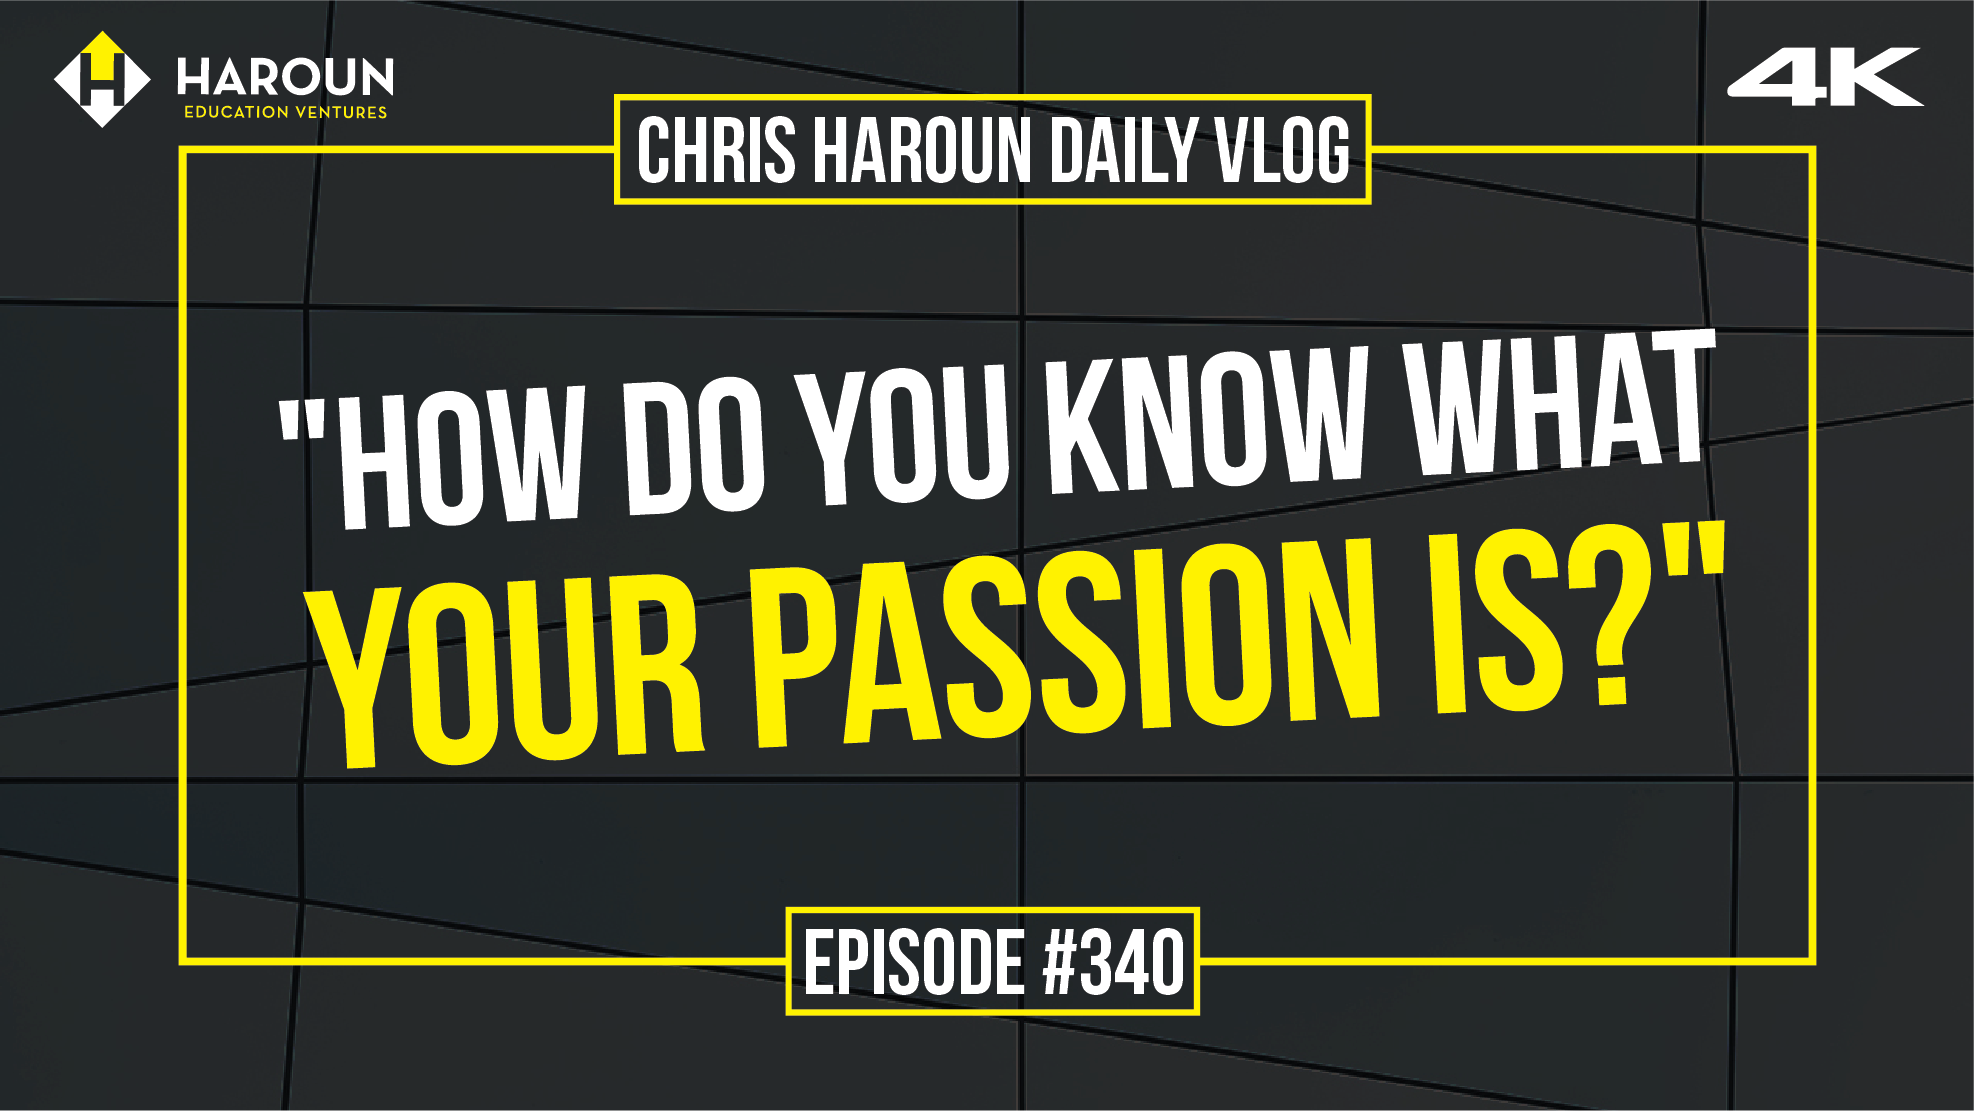 VLOG_340_7_6_2019_%22How Do You Know What Your Passion Is?%22.png